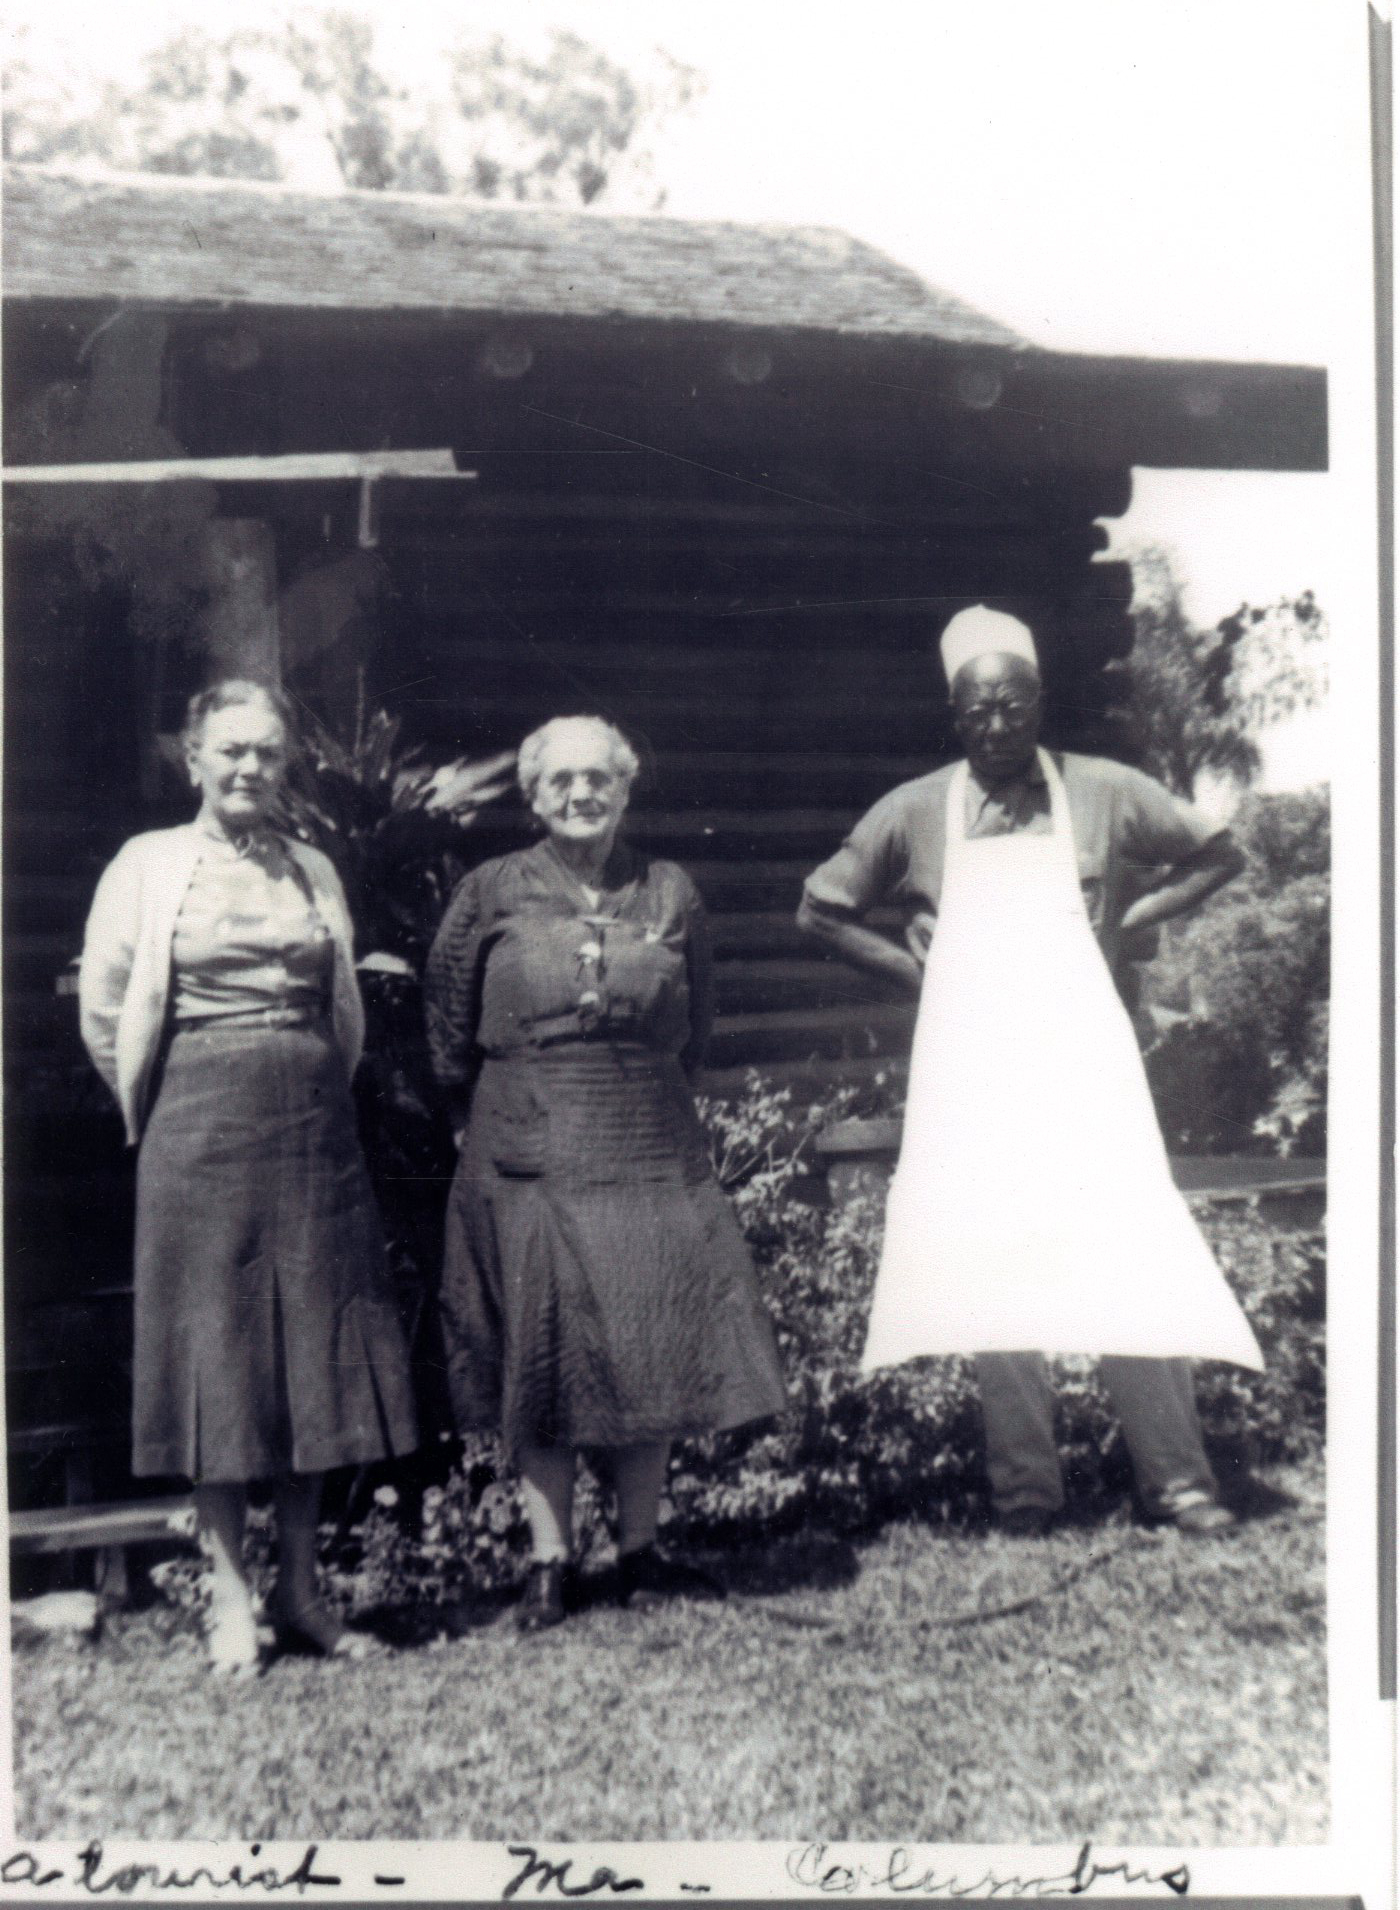 Jessie Candler Coachman and Columbus Moore at the first Kumquat Shop, Clearwater, Florida, circa 1940.